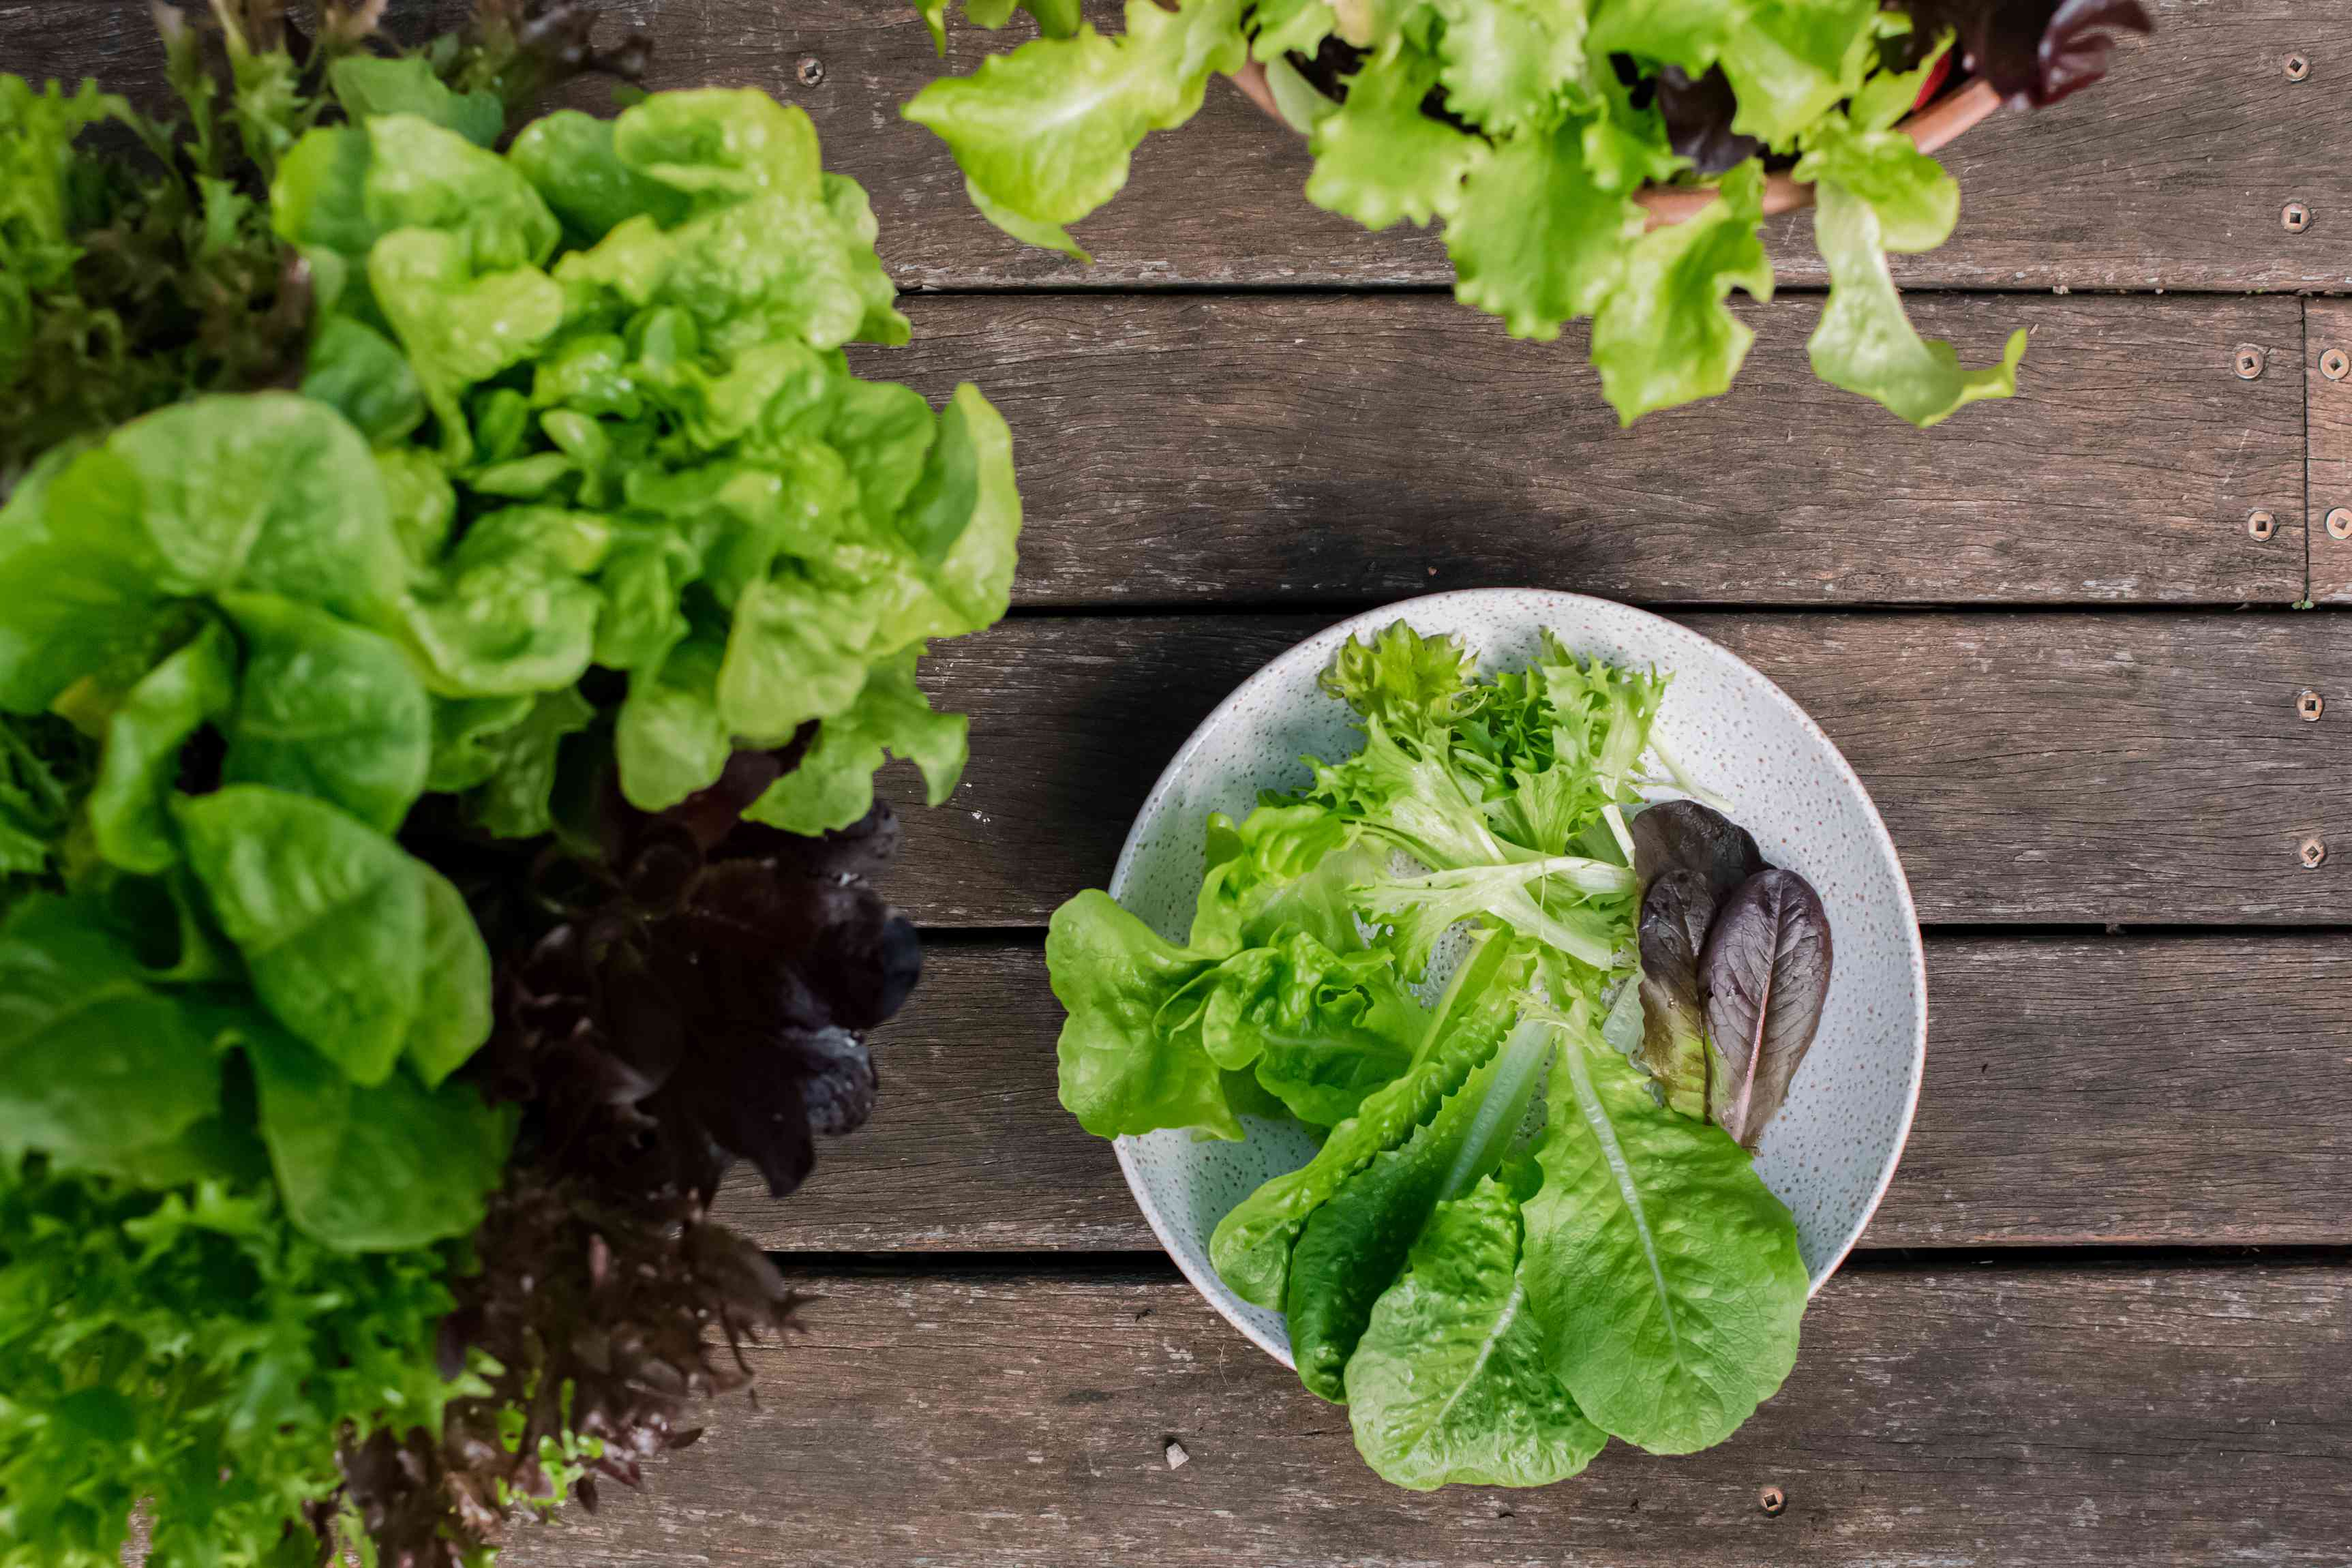 lettuce plants and harvest